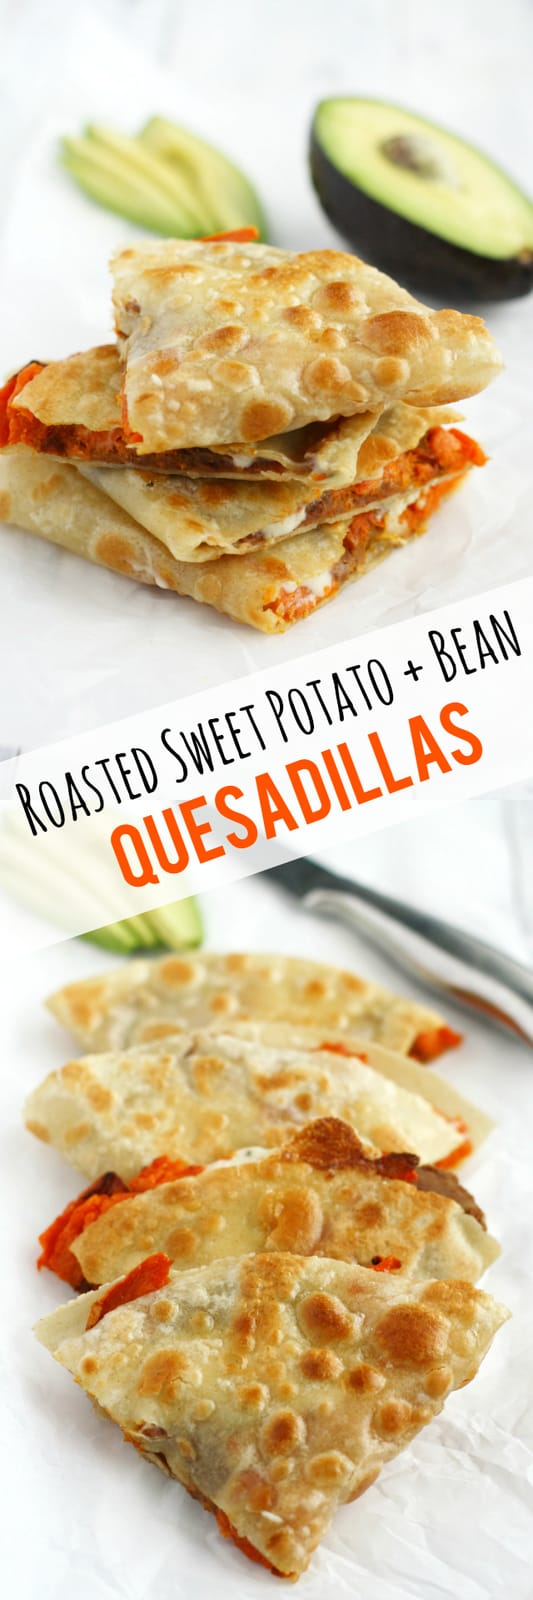 Make these crispy, melty, and delicious quesadillas for lunch today! Roasted sweet potatoes and beans make a healthy and tasty filling. #vegan #dairyfree #glutenfree